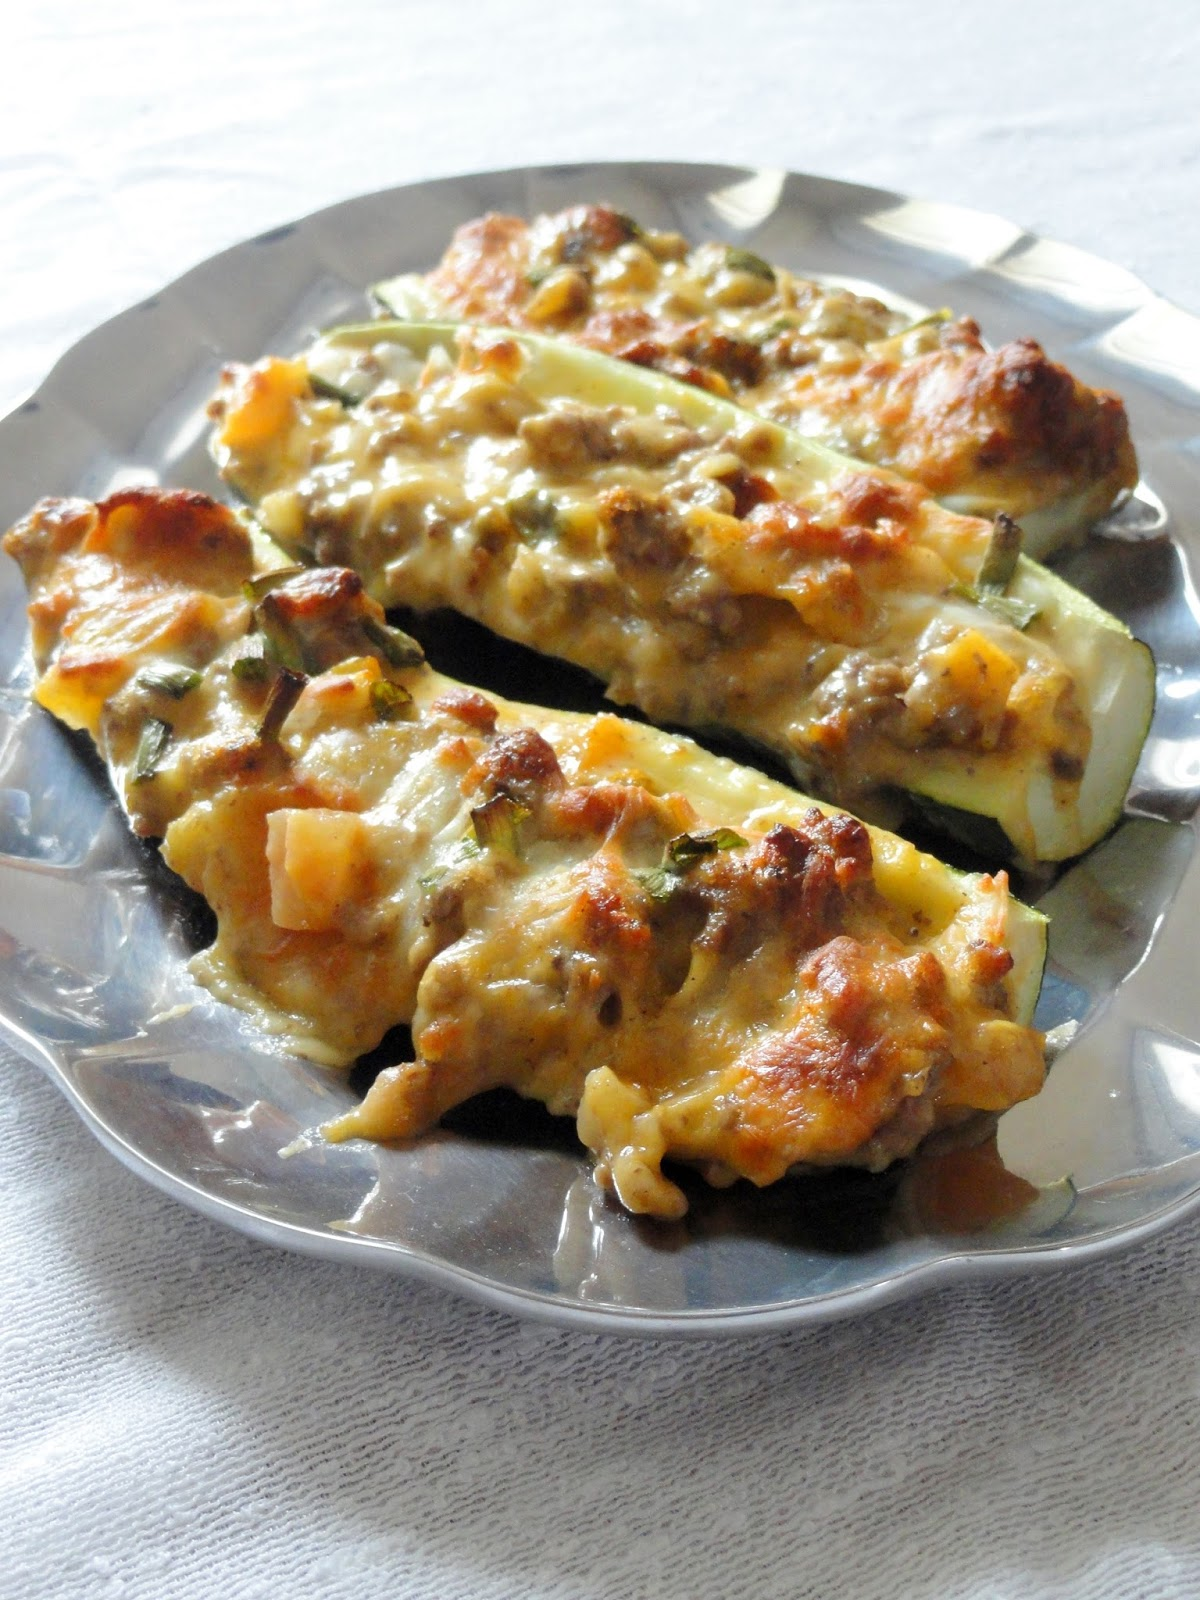 As Good As Gluten: Cheeseburger Stuffed Zucchini Boats